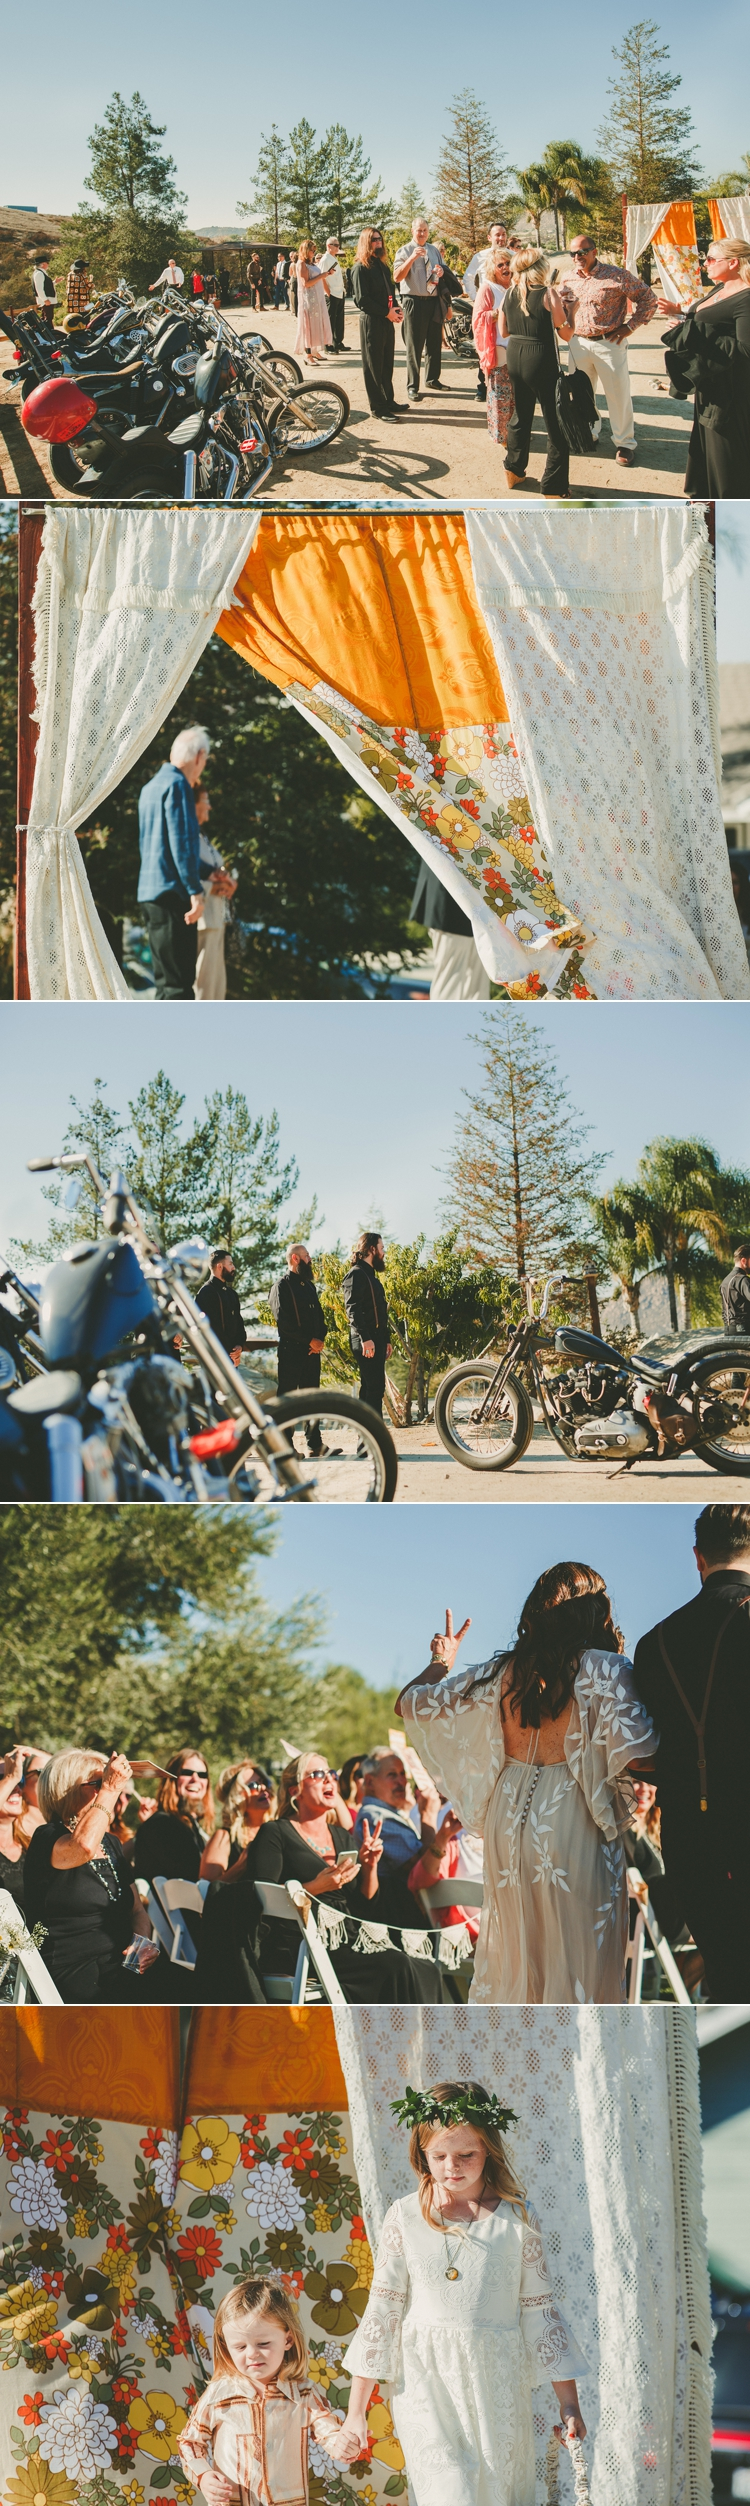 woodstock-inspired-wedding-photos-11